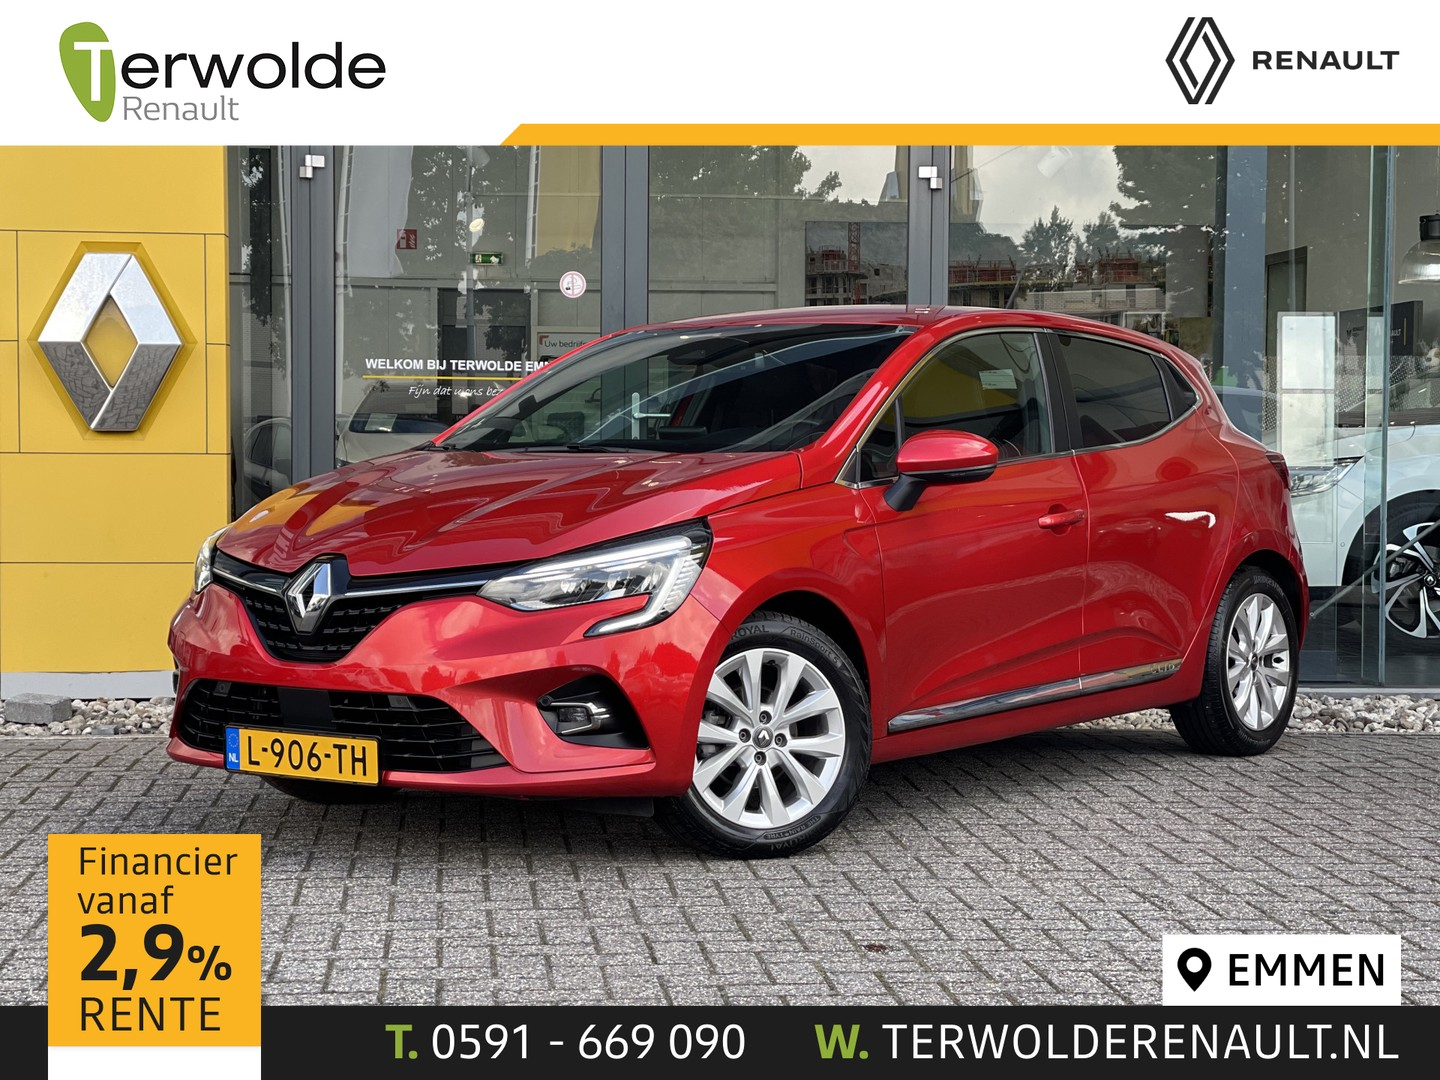 Renault Clio 1.0 tce 100pk intens